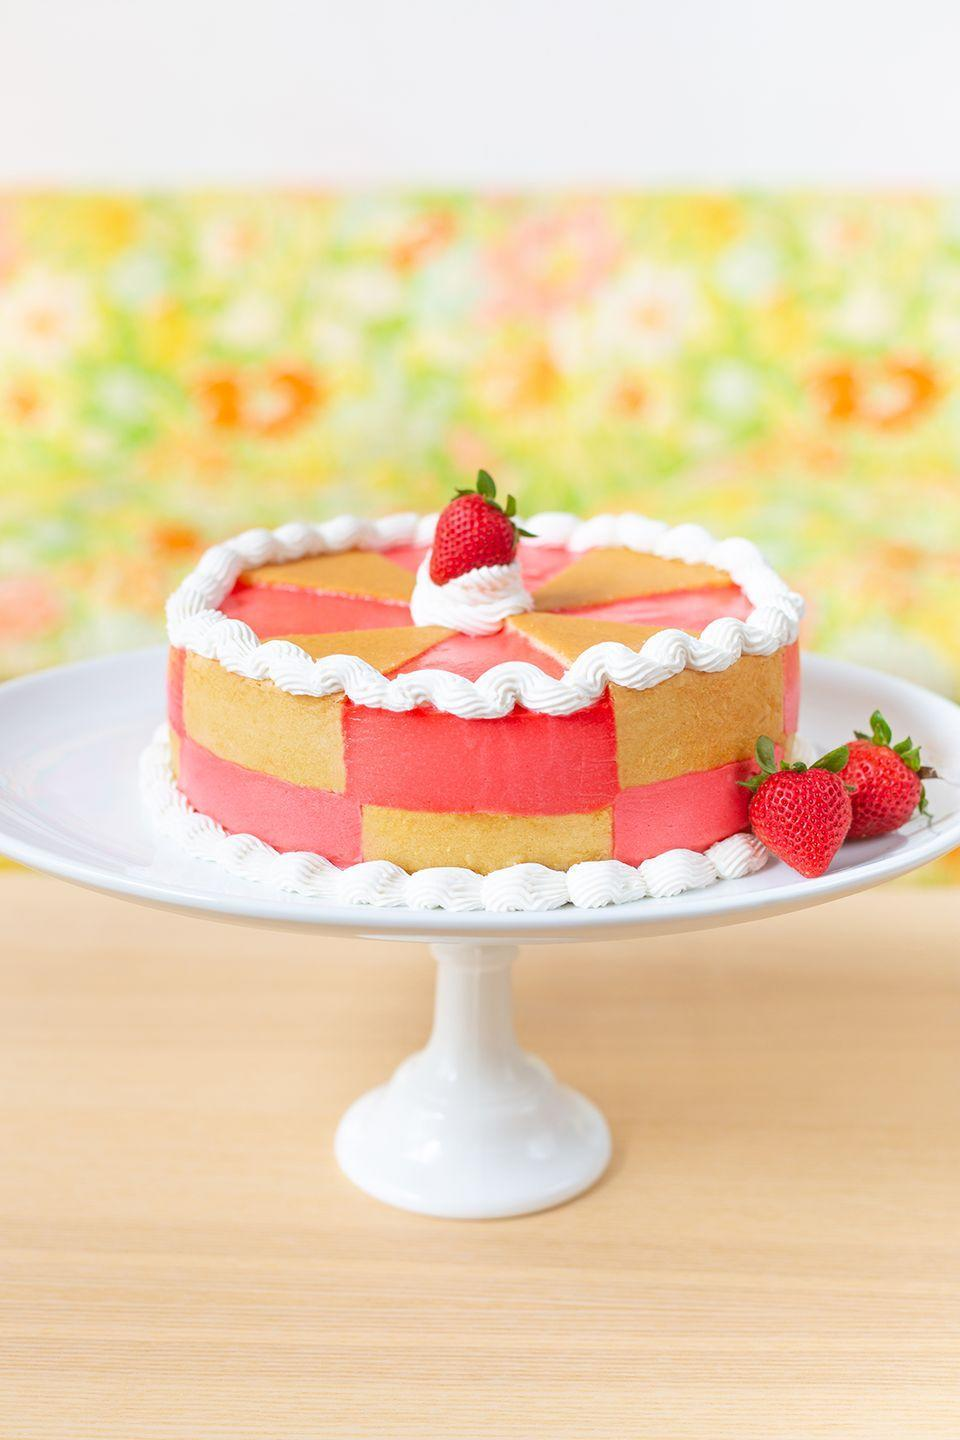 "<p>Truly, how cute is this Jell-O cake? The recipe is from a 1978 magazine, so it's totally possible you enjoyed this exact treat, or one like it, as a child. All of its retro glory is enough to make us want to throw our very own vintage-themed 50th birthday party!</p><p><strong>Get the recipe from <a href=""http://www.awwsam.com/2020/04/pink-magic-jello-cake.html"" rel=""nofollow noopener"" target=""_blank"" data-ylk=""slk:Aww Sam"" class=""link rapid-noclick-resp"">Aww Sam</a>. </strong></p><p><strong><a class=""link rapid-noclick-resp"" href=""https://go.redirectingat.com?id=74968X1596630&url=https%3A%2F%2Fwww.walmart.com%2Fip%2FCrosby-Street-Cake-Stand-Pedestal-Plate-Vintage-Style-Crystal-Clear-Glass-Distinct-All-Over-Pattern-7-Inch-Diameter%2F769297093&sref=https%3A%2F%2Fwww.thepioneerwoman.com%2Fhome-lifestyle%2Fentertaining%2Fg34192298%2F50th-birthday-party-ideas%2F"" rel=""nofollow noopener"" target=""_blank"" data-ylk=""slk:SHOP VINTAGE-INSPIRED CAKE STANDS"">SHOP VINTAGE-INSPIRED CAKE STANDS</a><br></strong></p>"